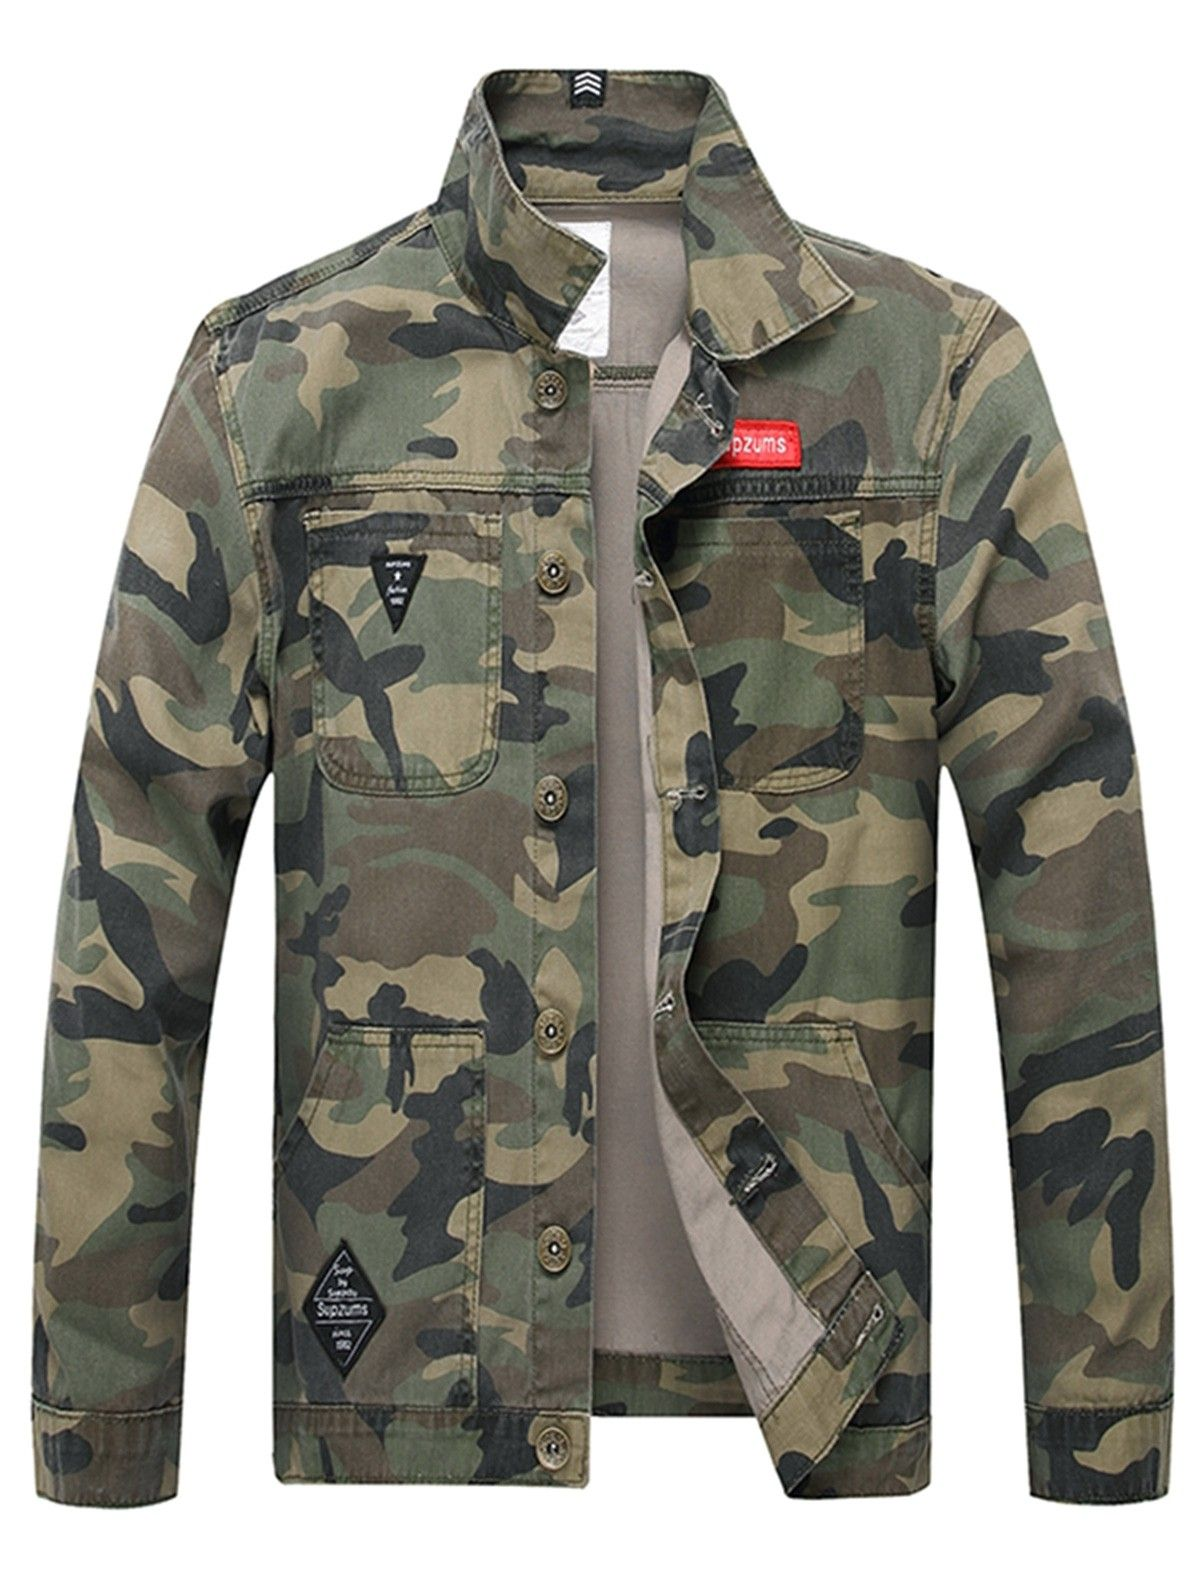 Applique Button Up Camouflage Jacket Army Green 3q87276815 Size M Camouflage Jacket Camo Denim Jacket Camouflage Print Jacket [ 1596 x 1200 Pixel ]